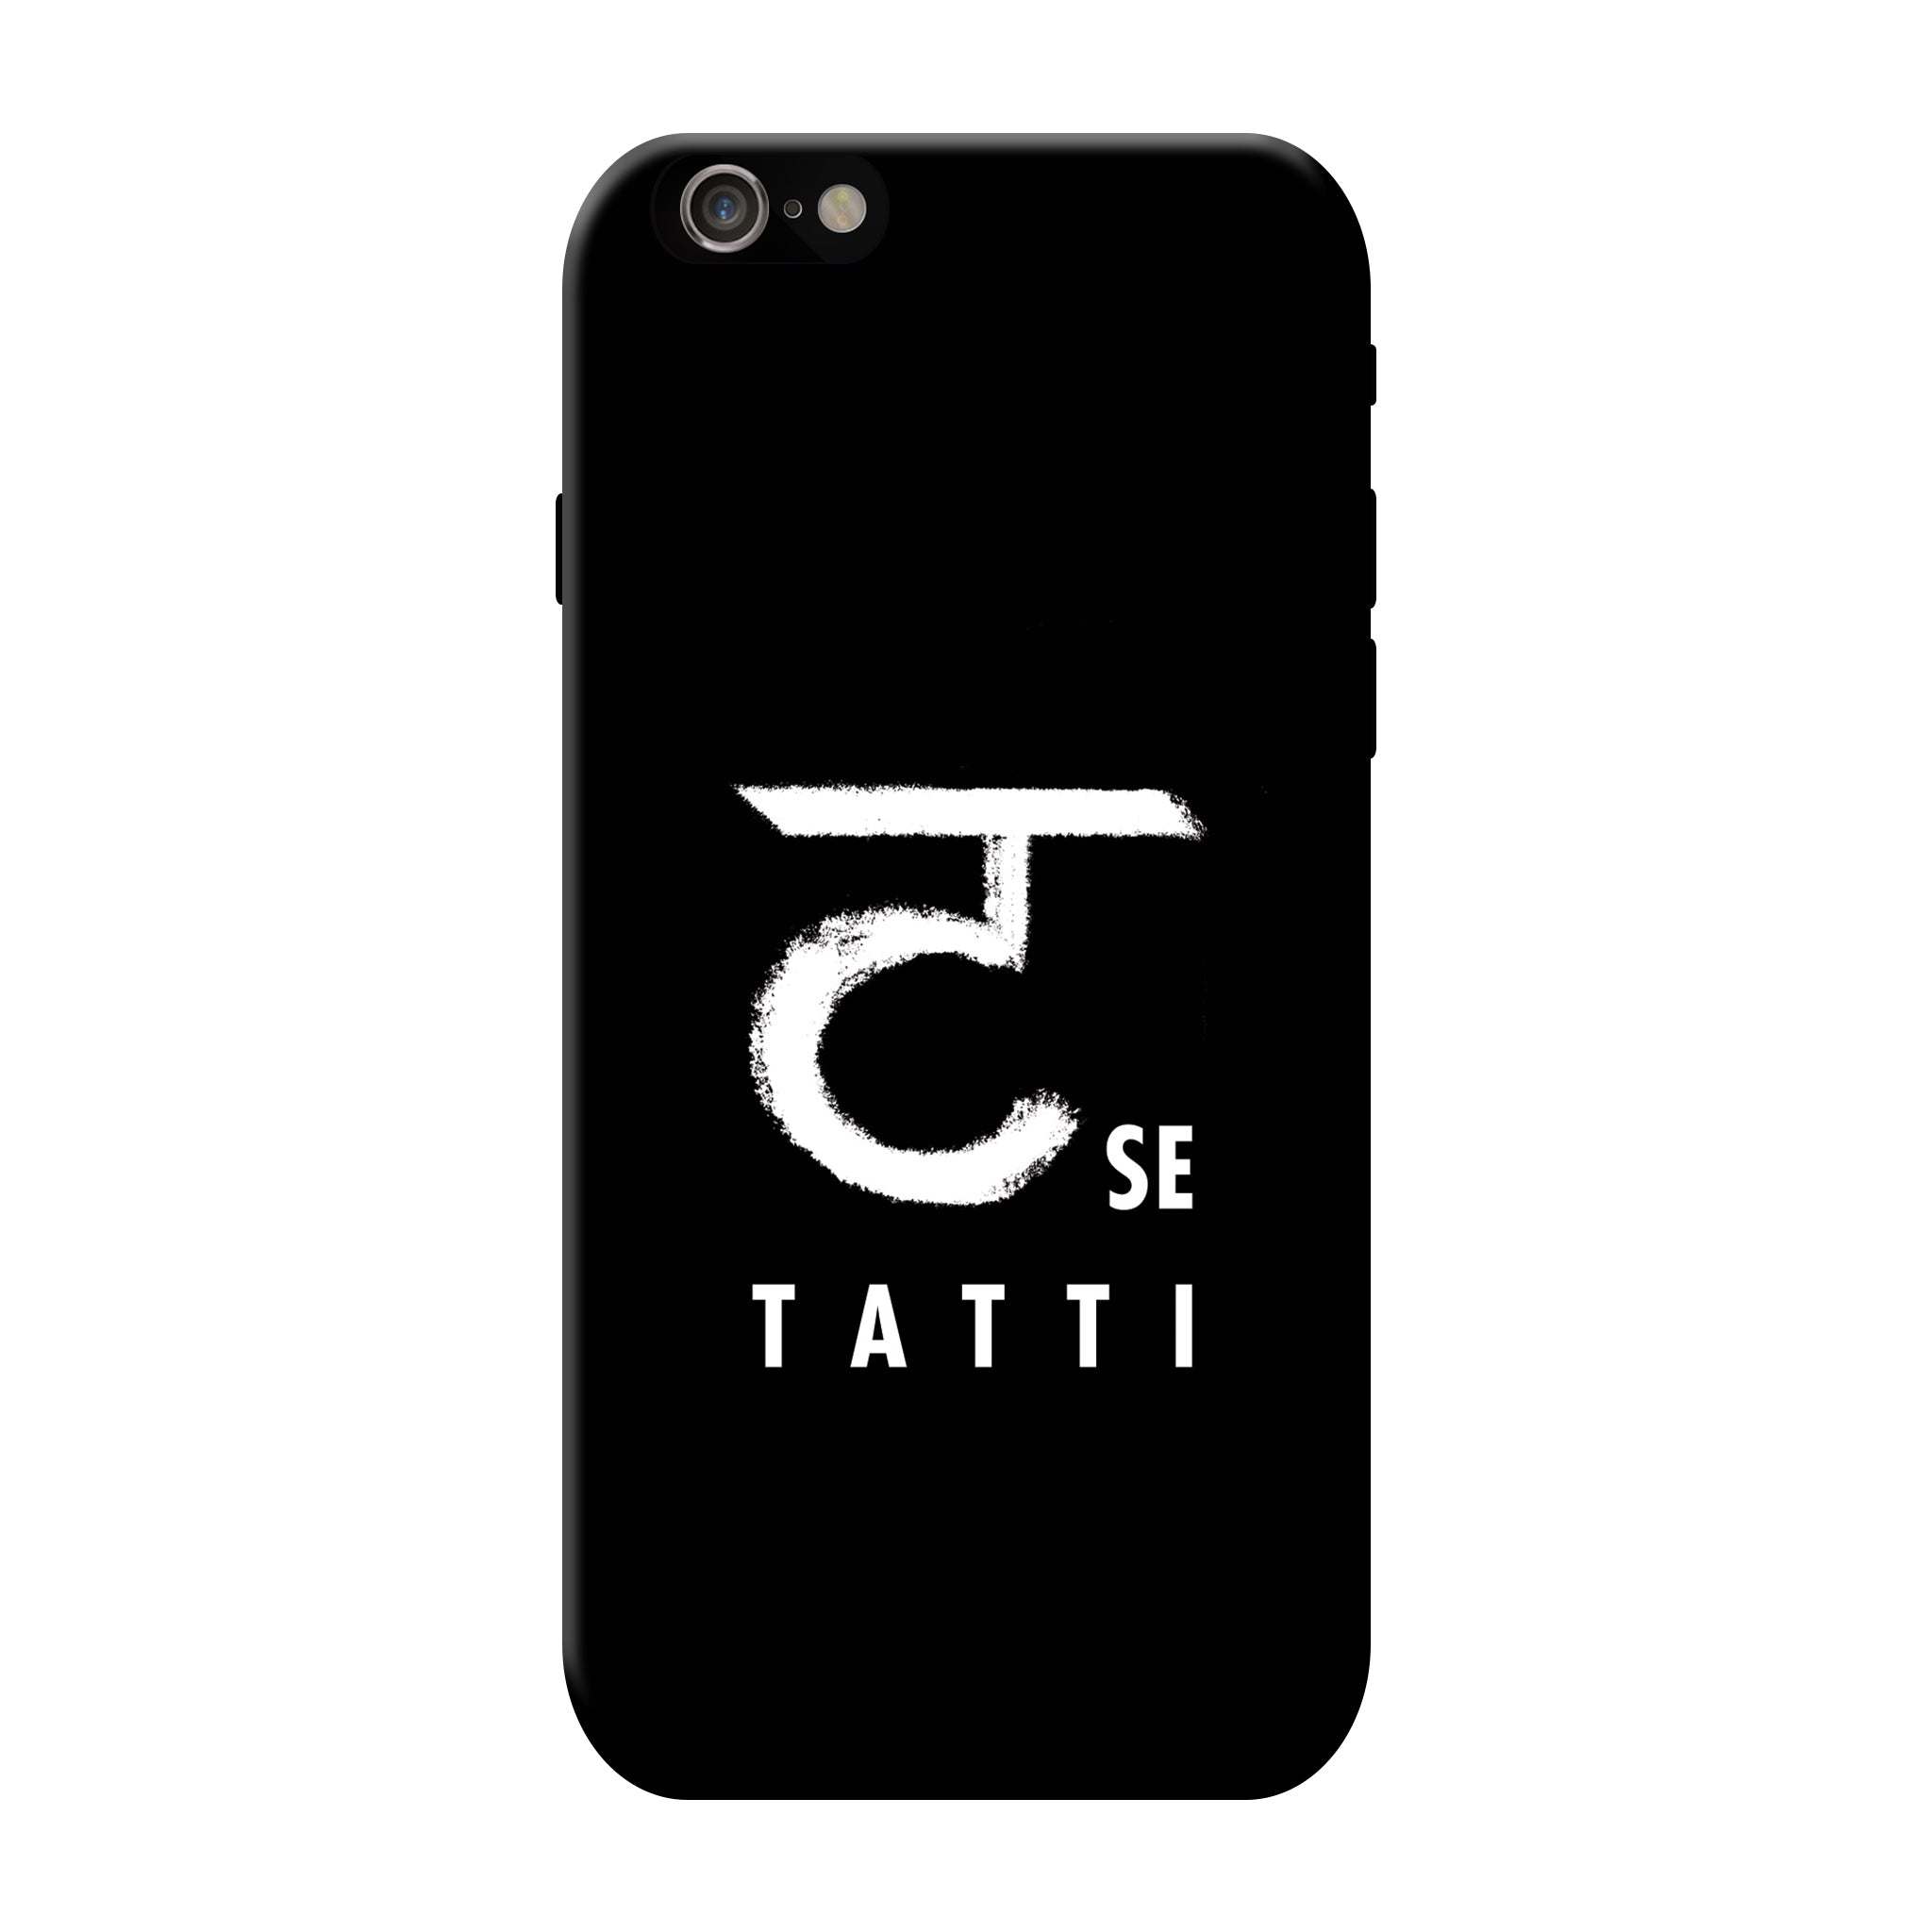 Tatti Iphone 6/6s Cover